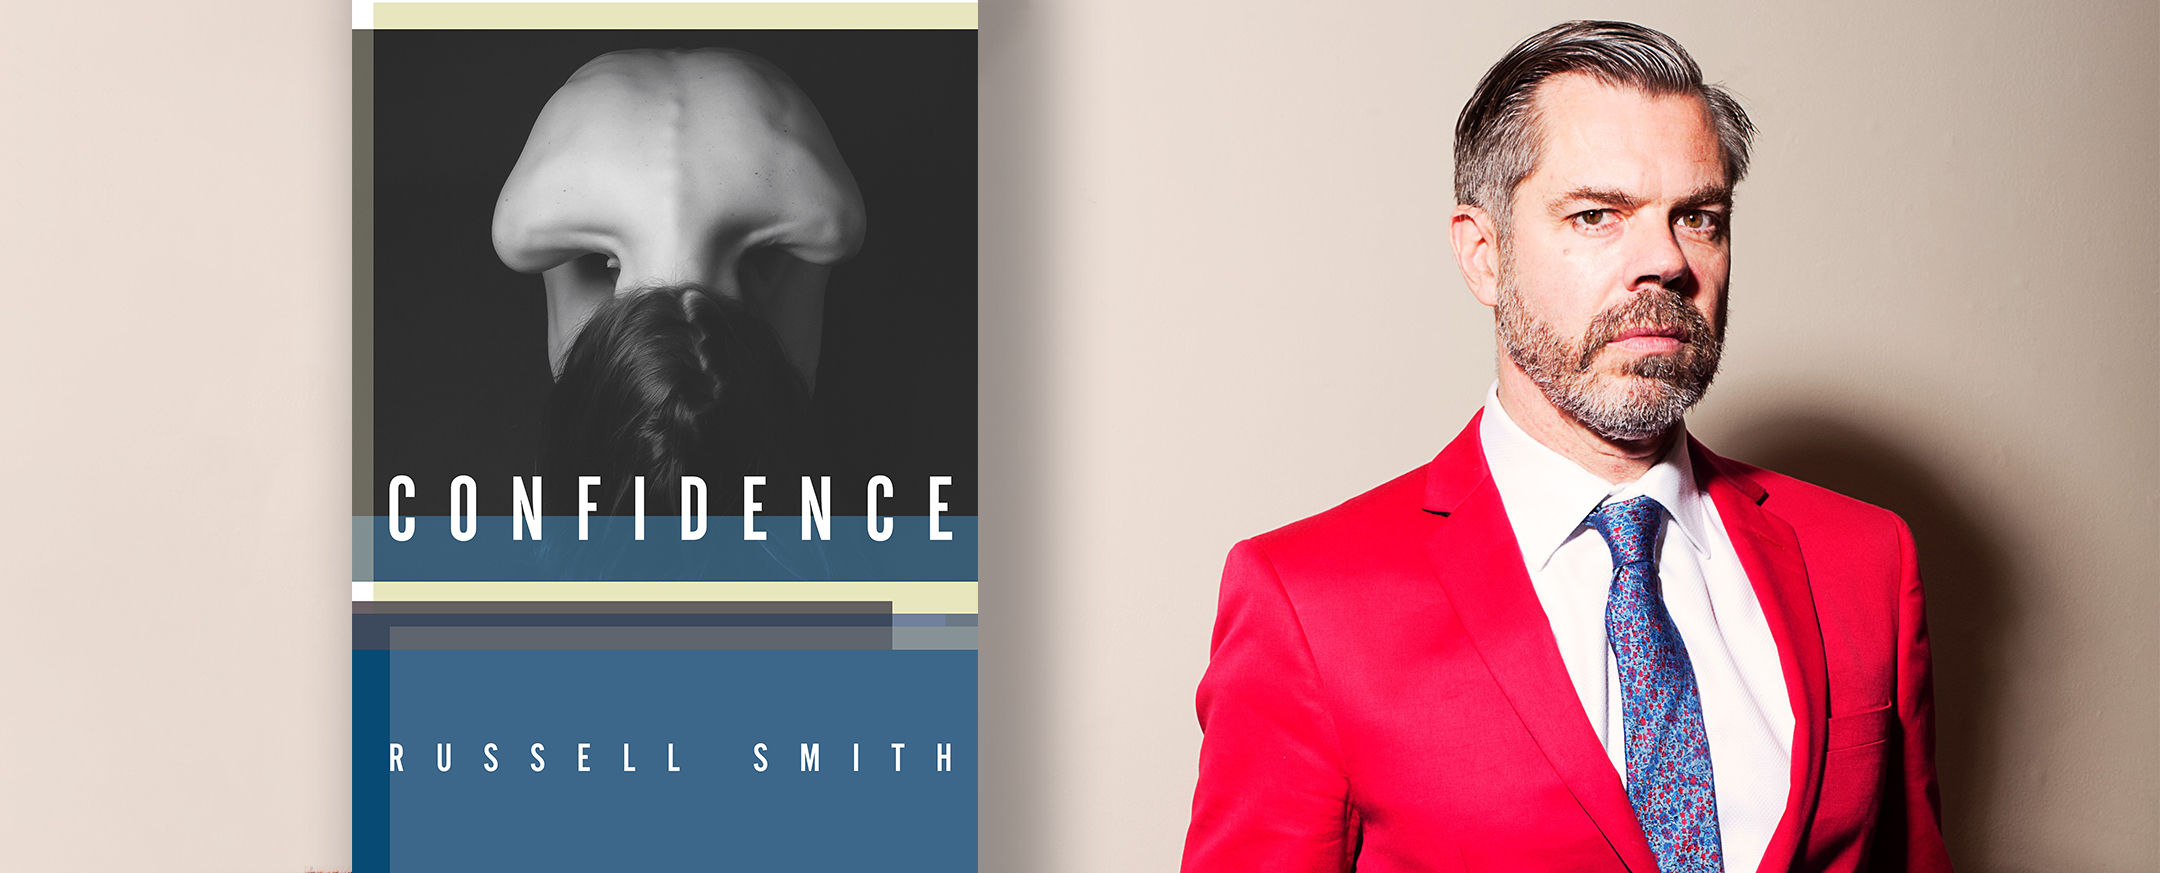 Russell Smith and his short story collection, Confidence